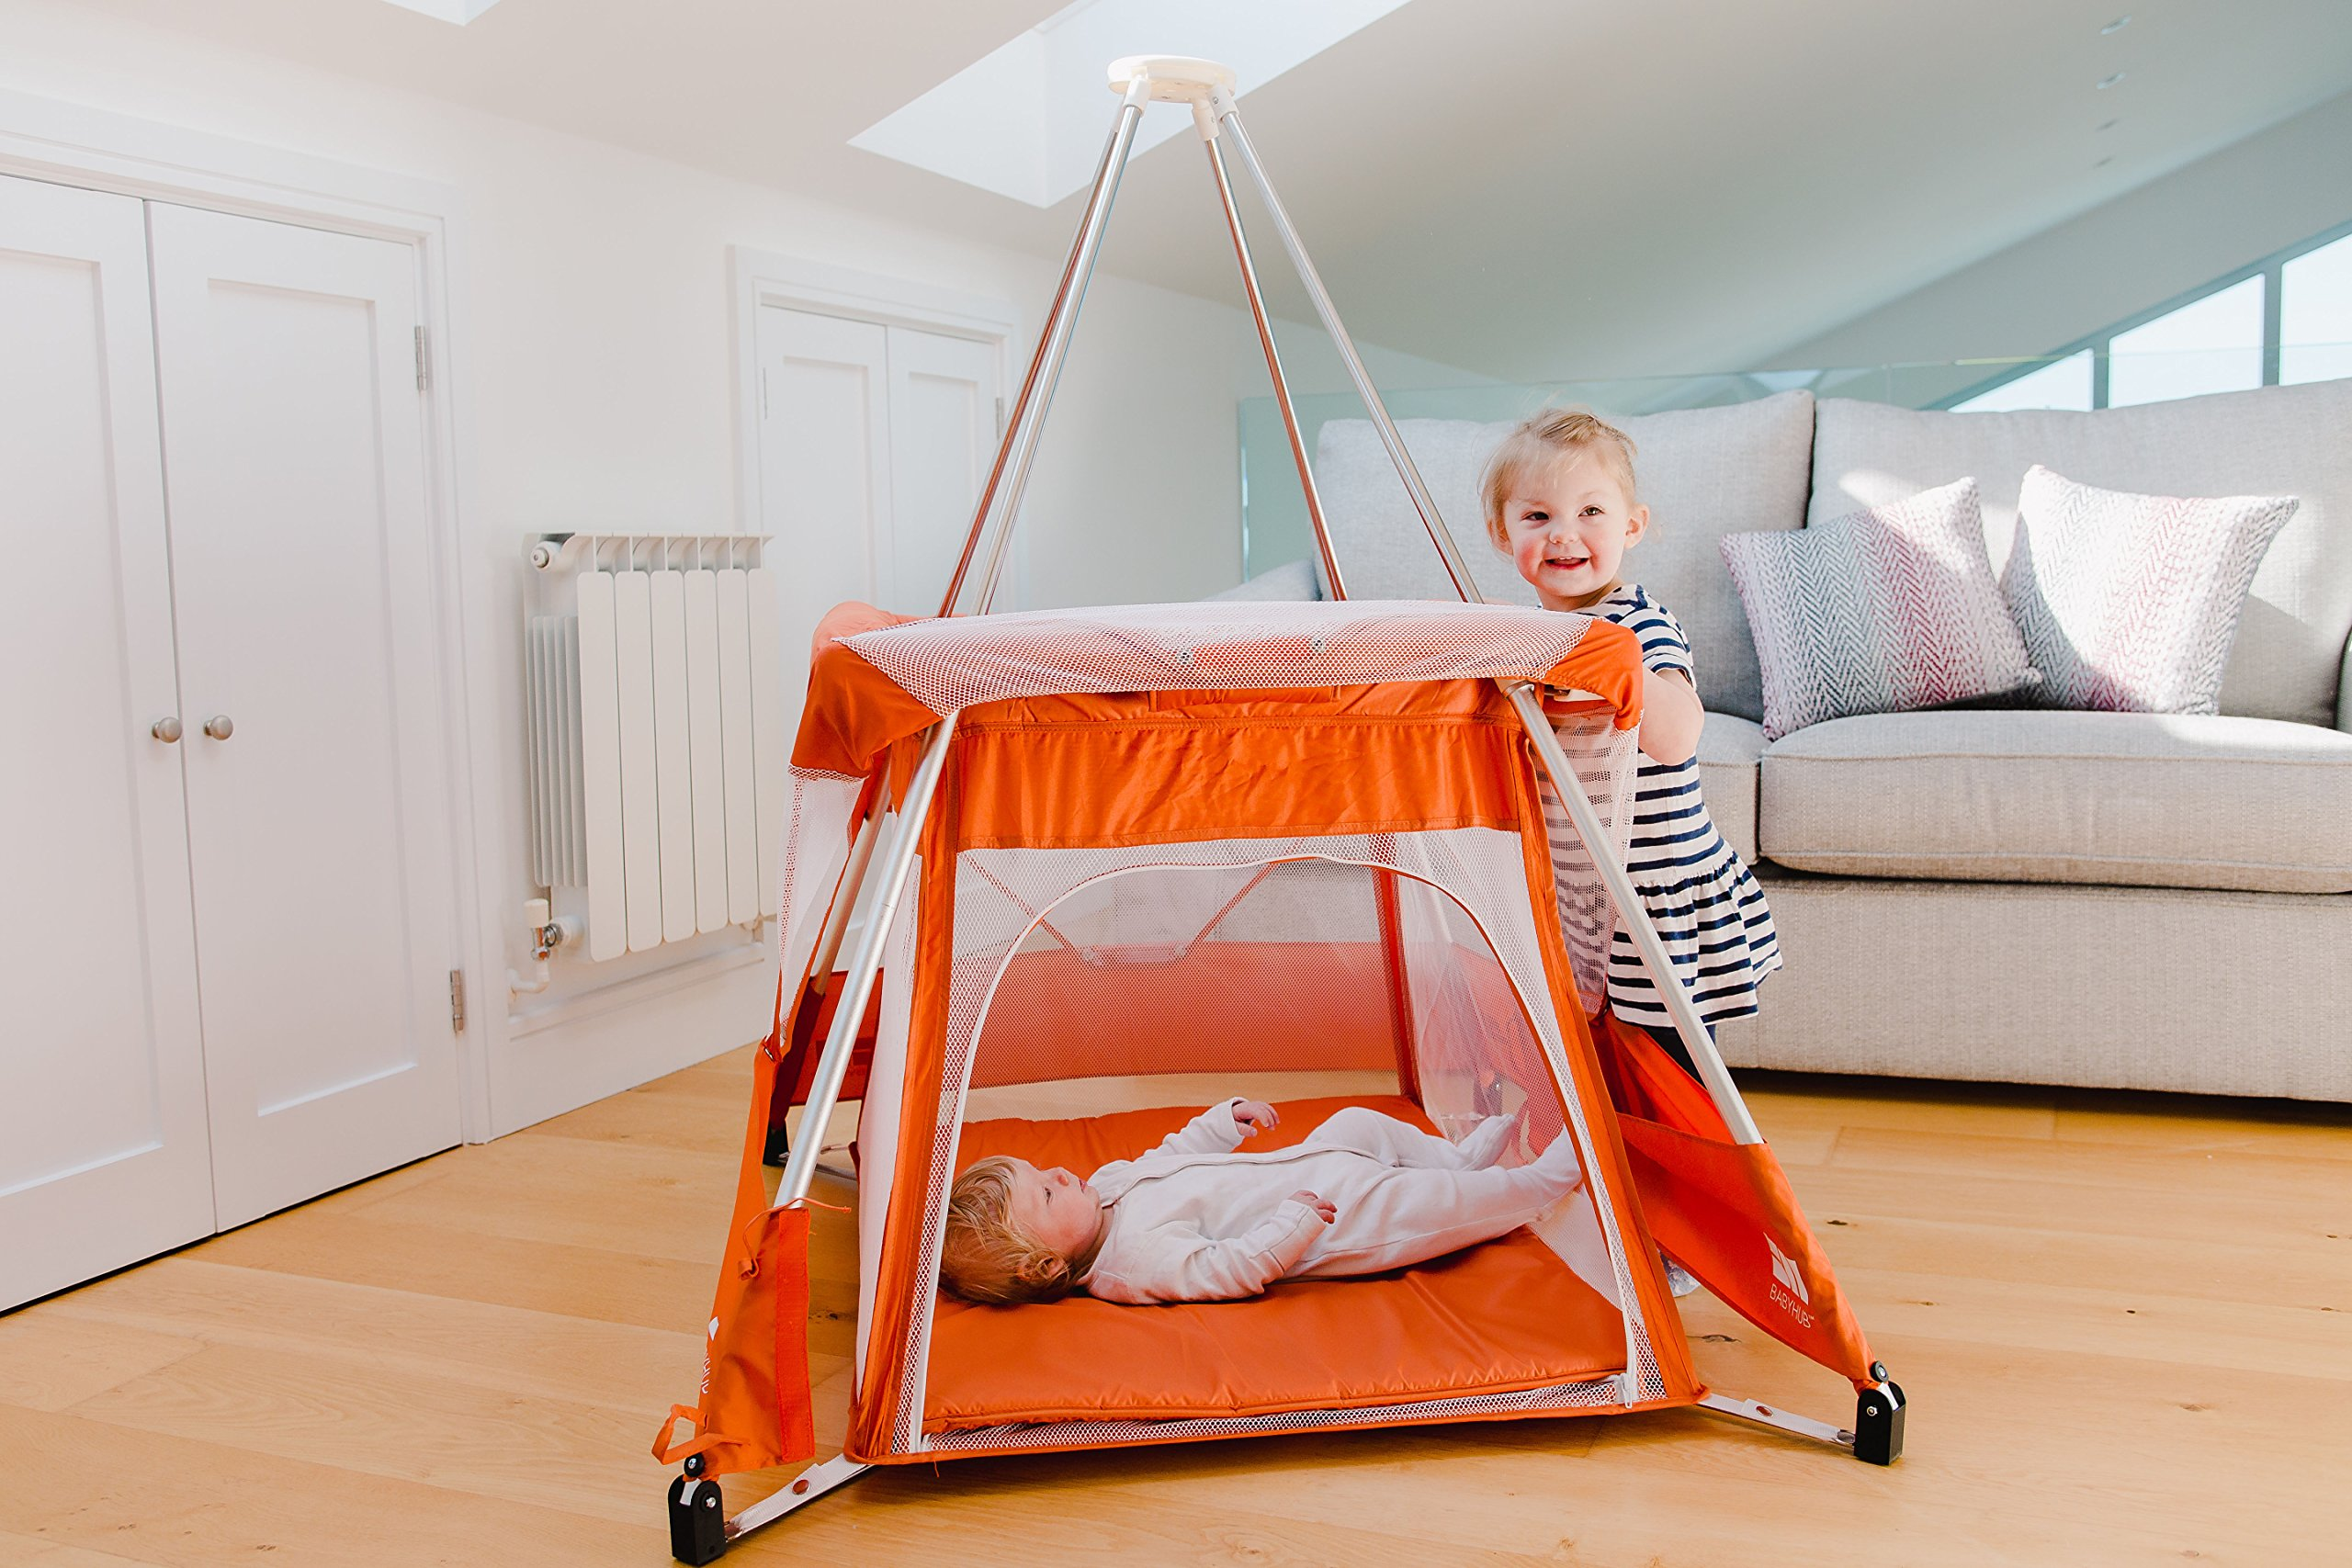 BabyHub SleepSpace Travel Cot with Mosquito Net, Orange BabyHub Three cots in one; use as a travel cot, mosquito proof space and reuse as a play tepee Includes extra mosquito net cover that can be securely in place Can be set up and moved even while holding a baby 3